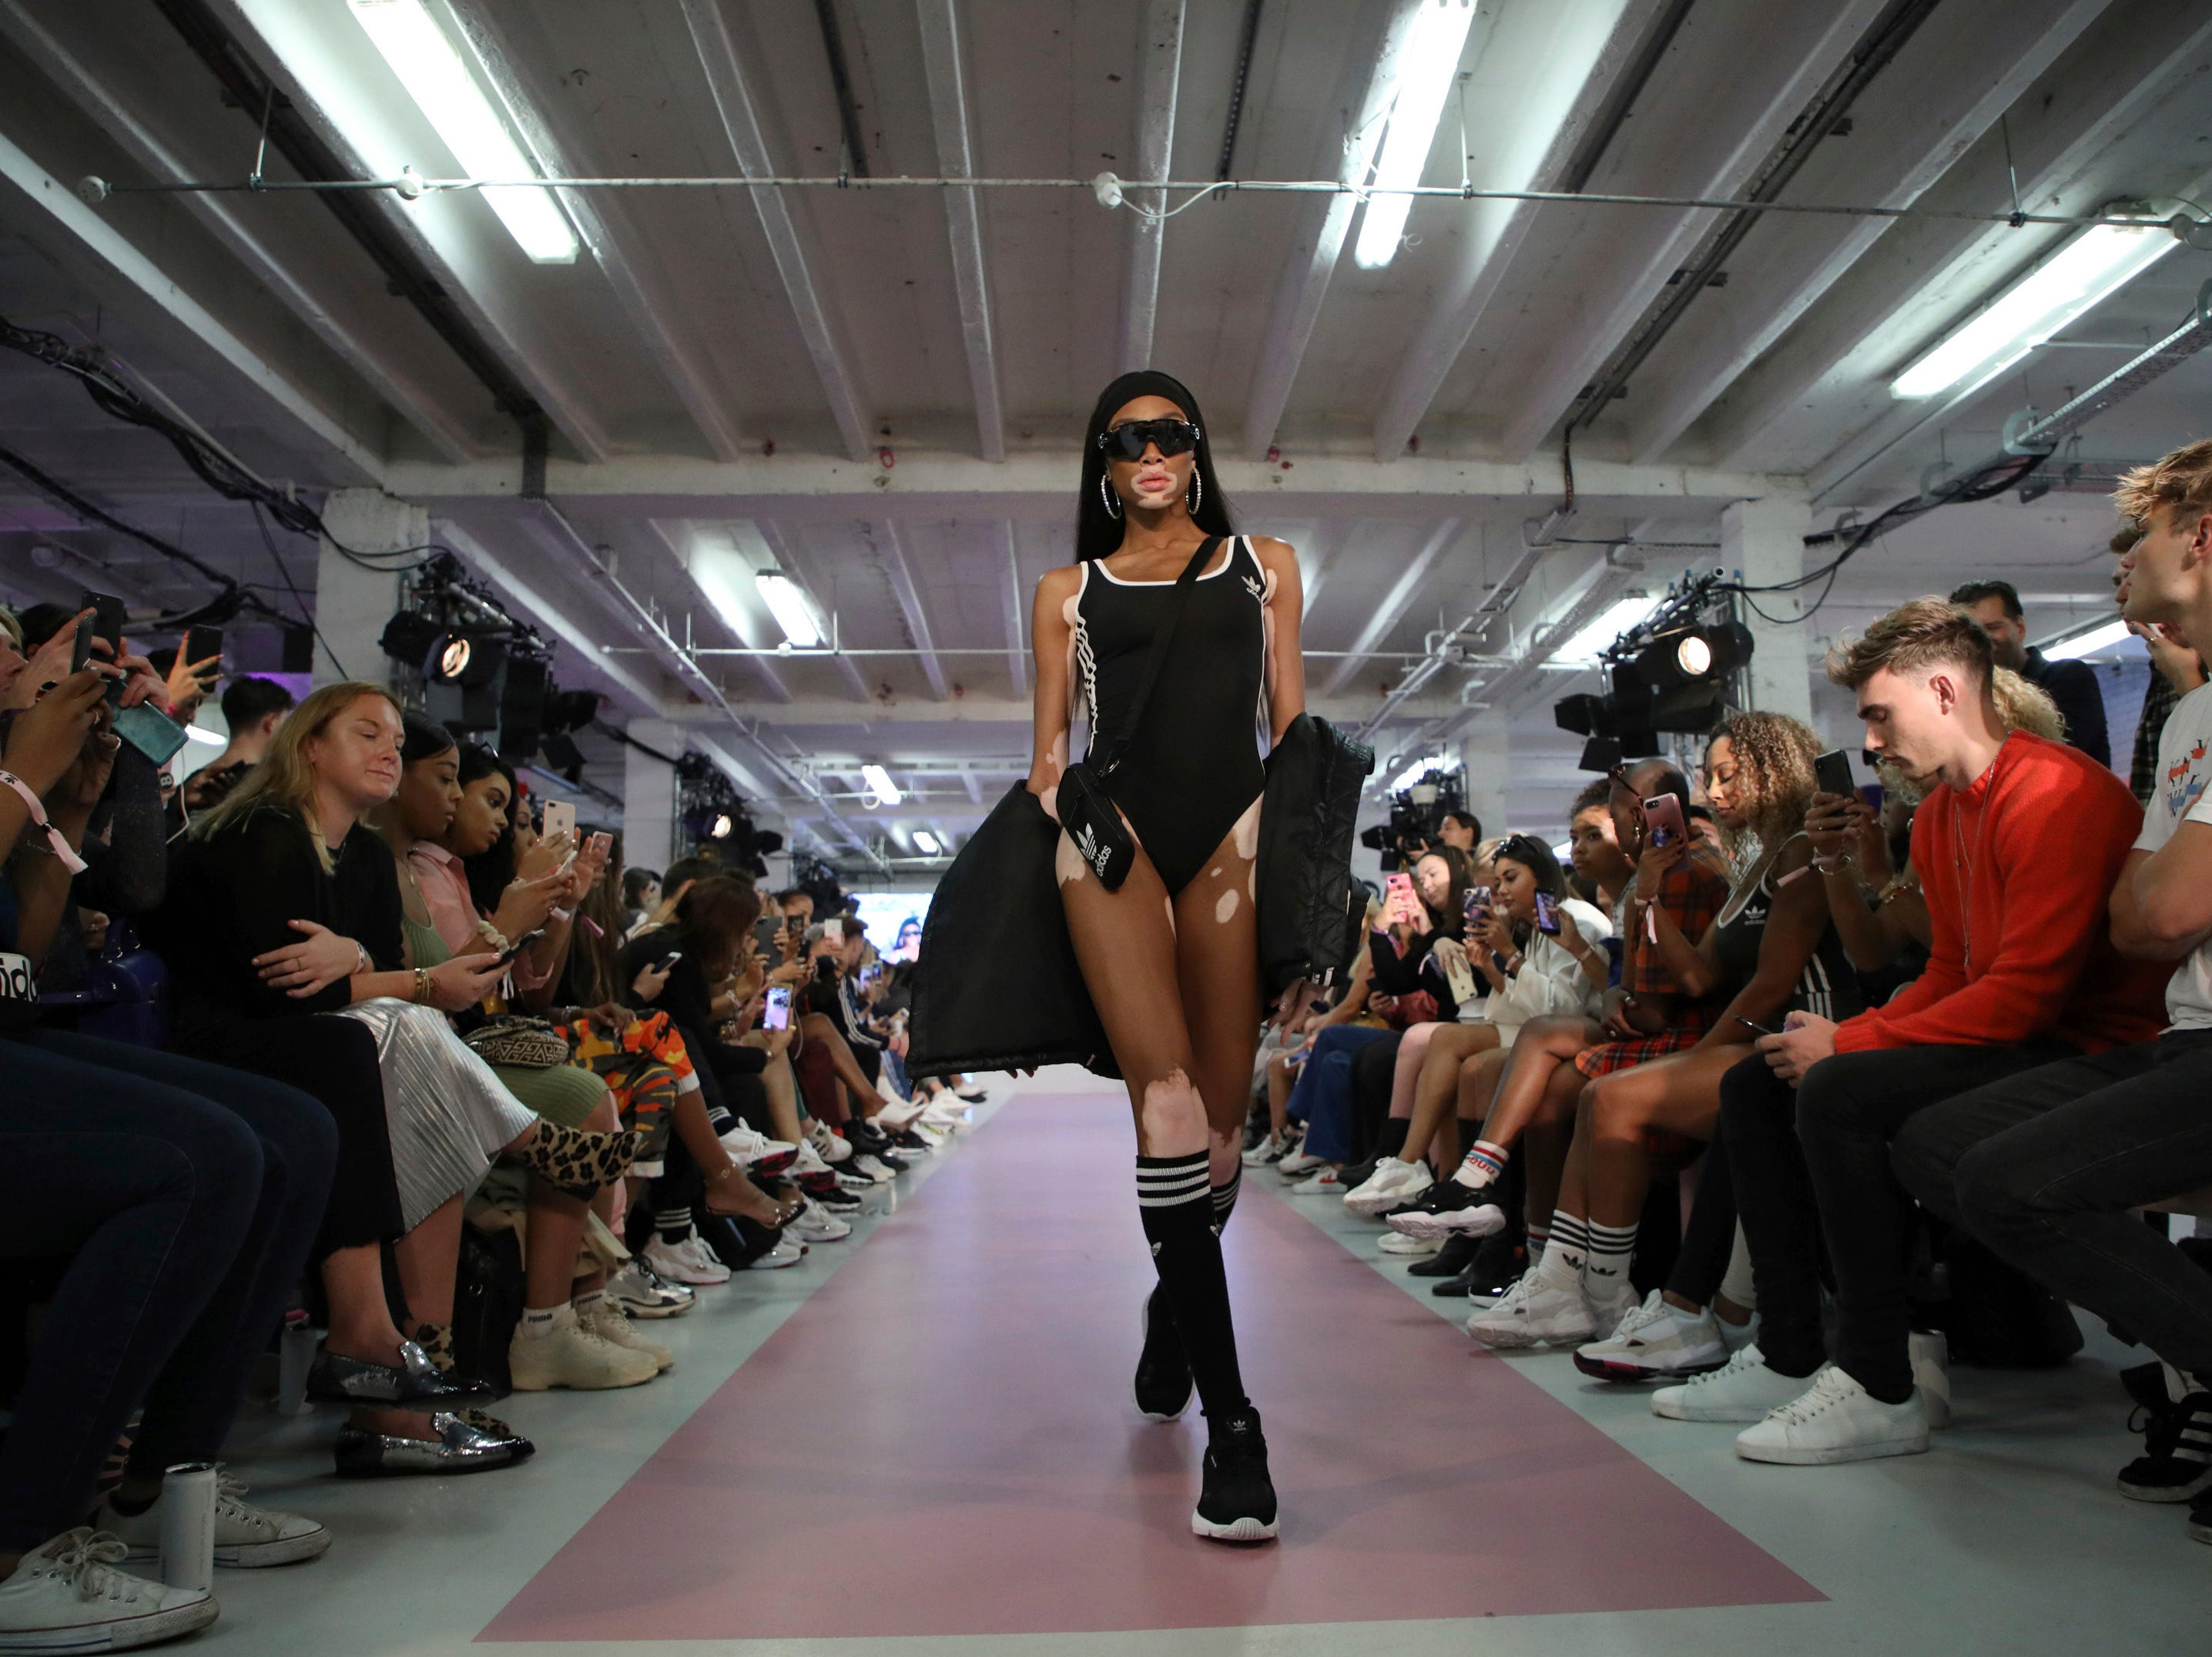 Model Winnie Harlow wears a creation by designer Hailey Baldwin for Adidas during their Spring/Summer 2019 runway show at London Fashion Week in London, Monday, Sept. 17, 2018.